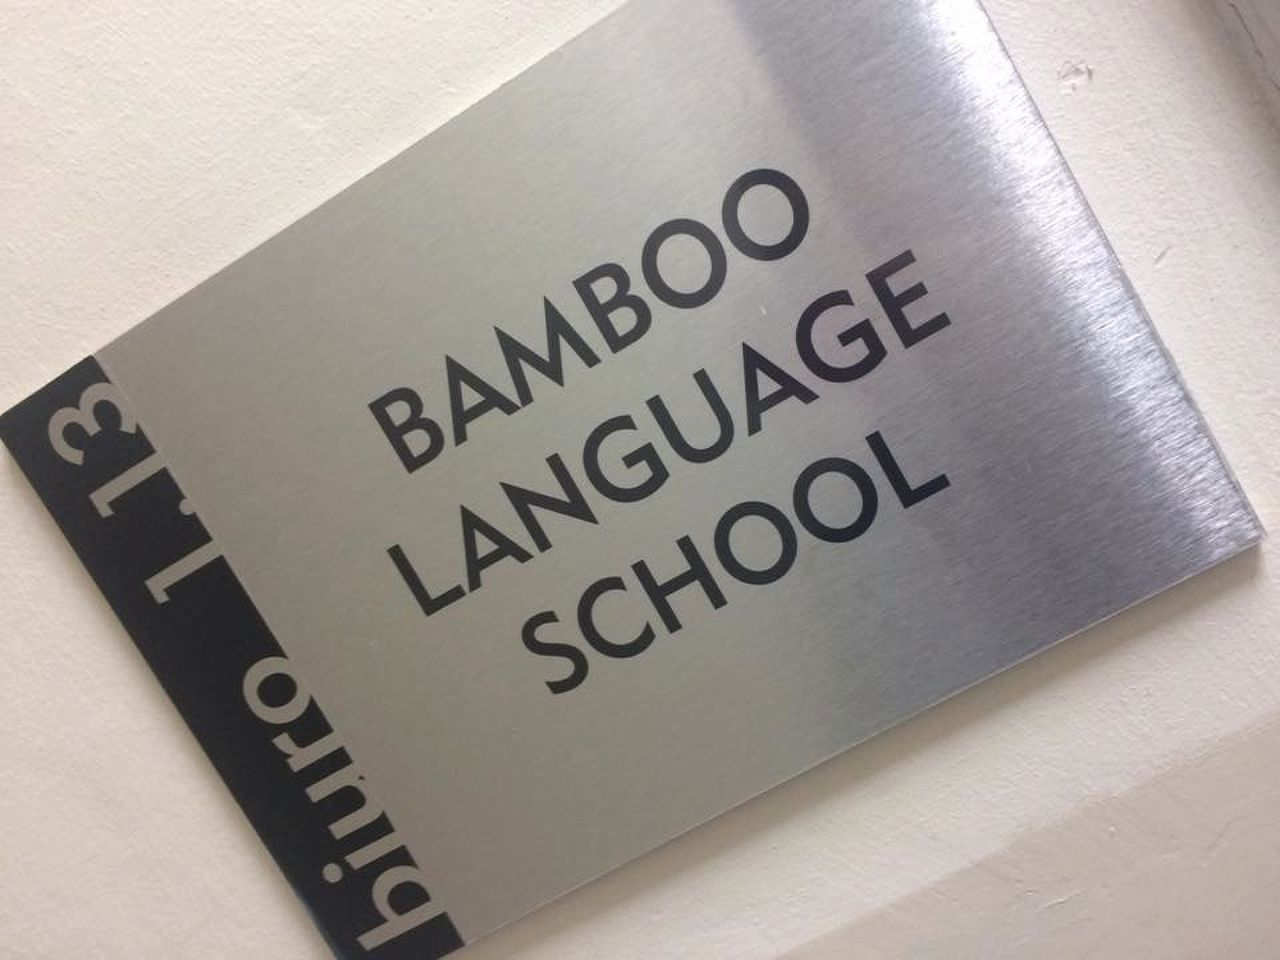 Photo 1 of Bamboo Language School